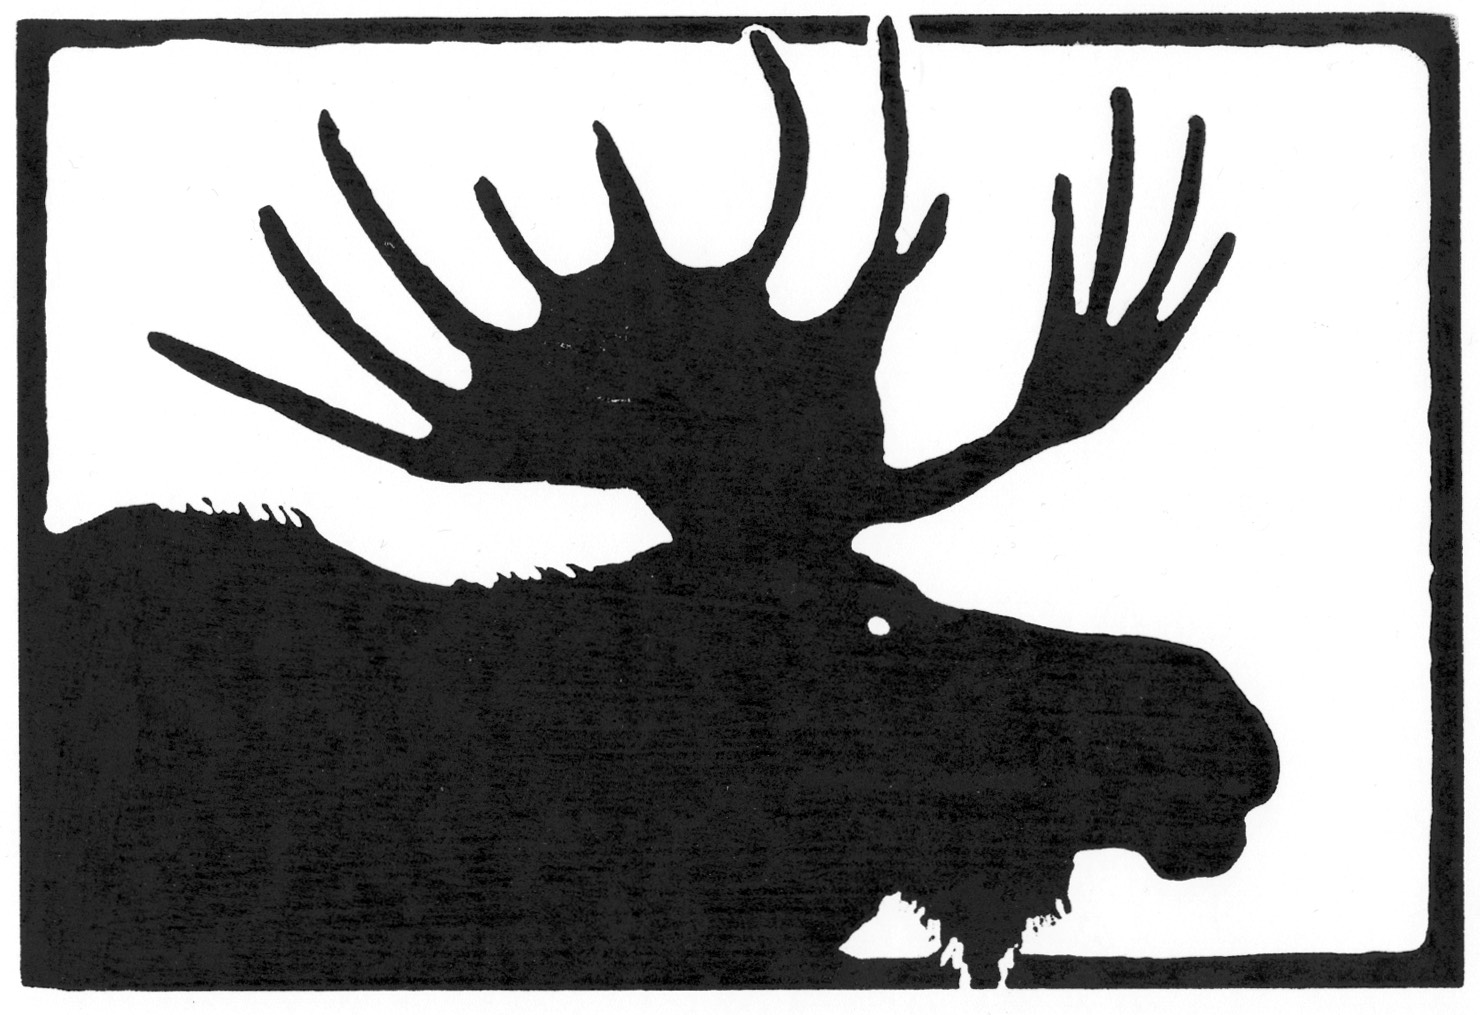 Bull Moose • © Fred Montague  $48 • image 8 x 5.5 • mat 14 x 11  Edition size: 88 • status: available